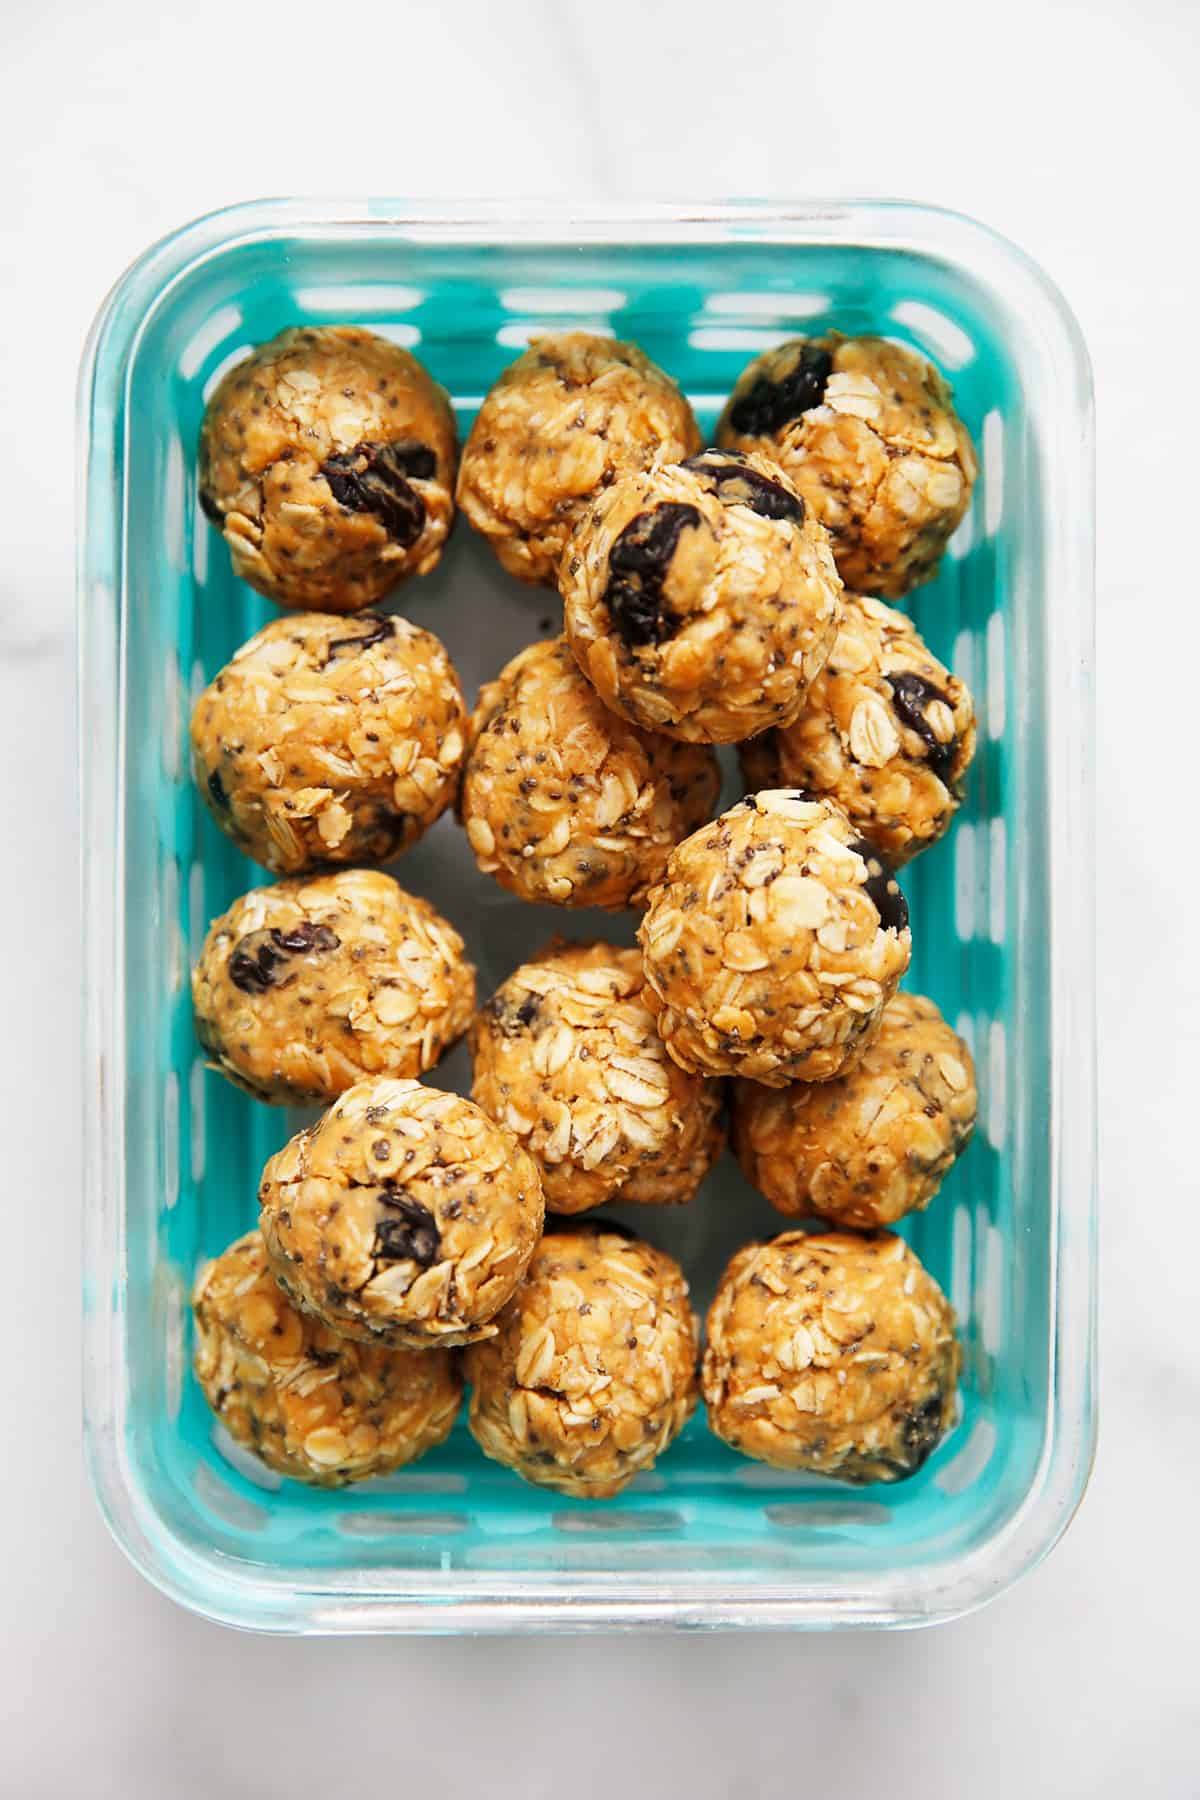 Peanut butter oatmeal energy bites in a glass container